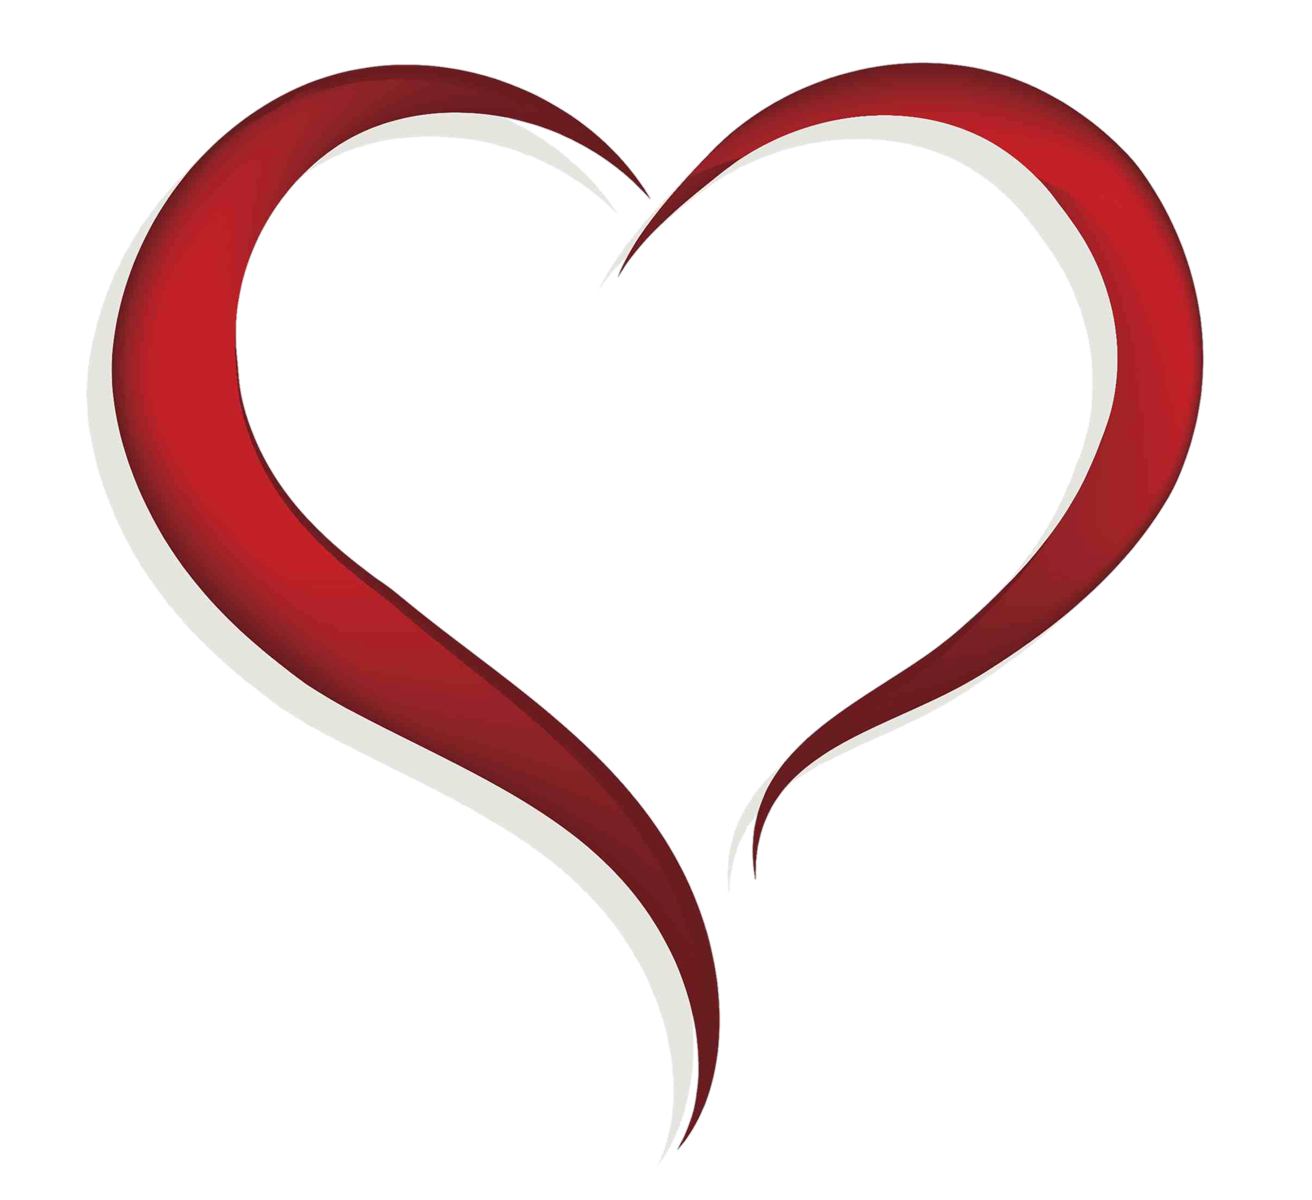 Heart Clipart Free & Heart Clip Art Images.